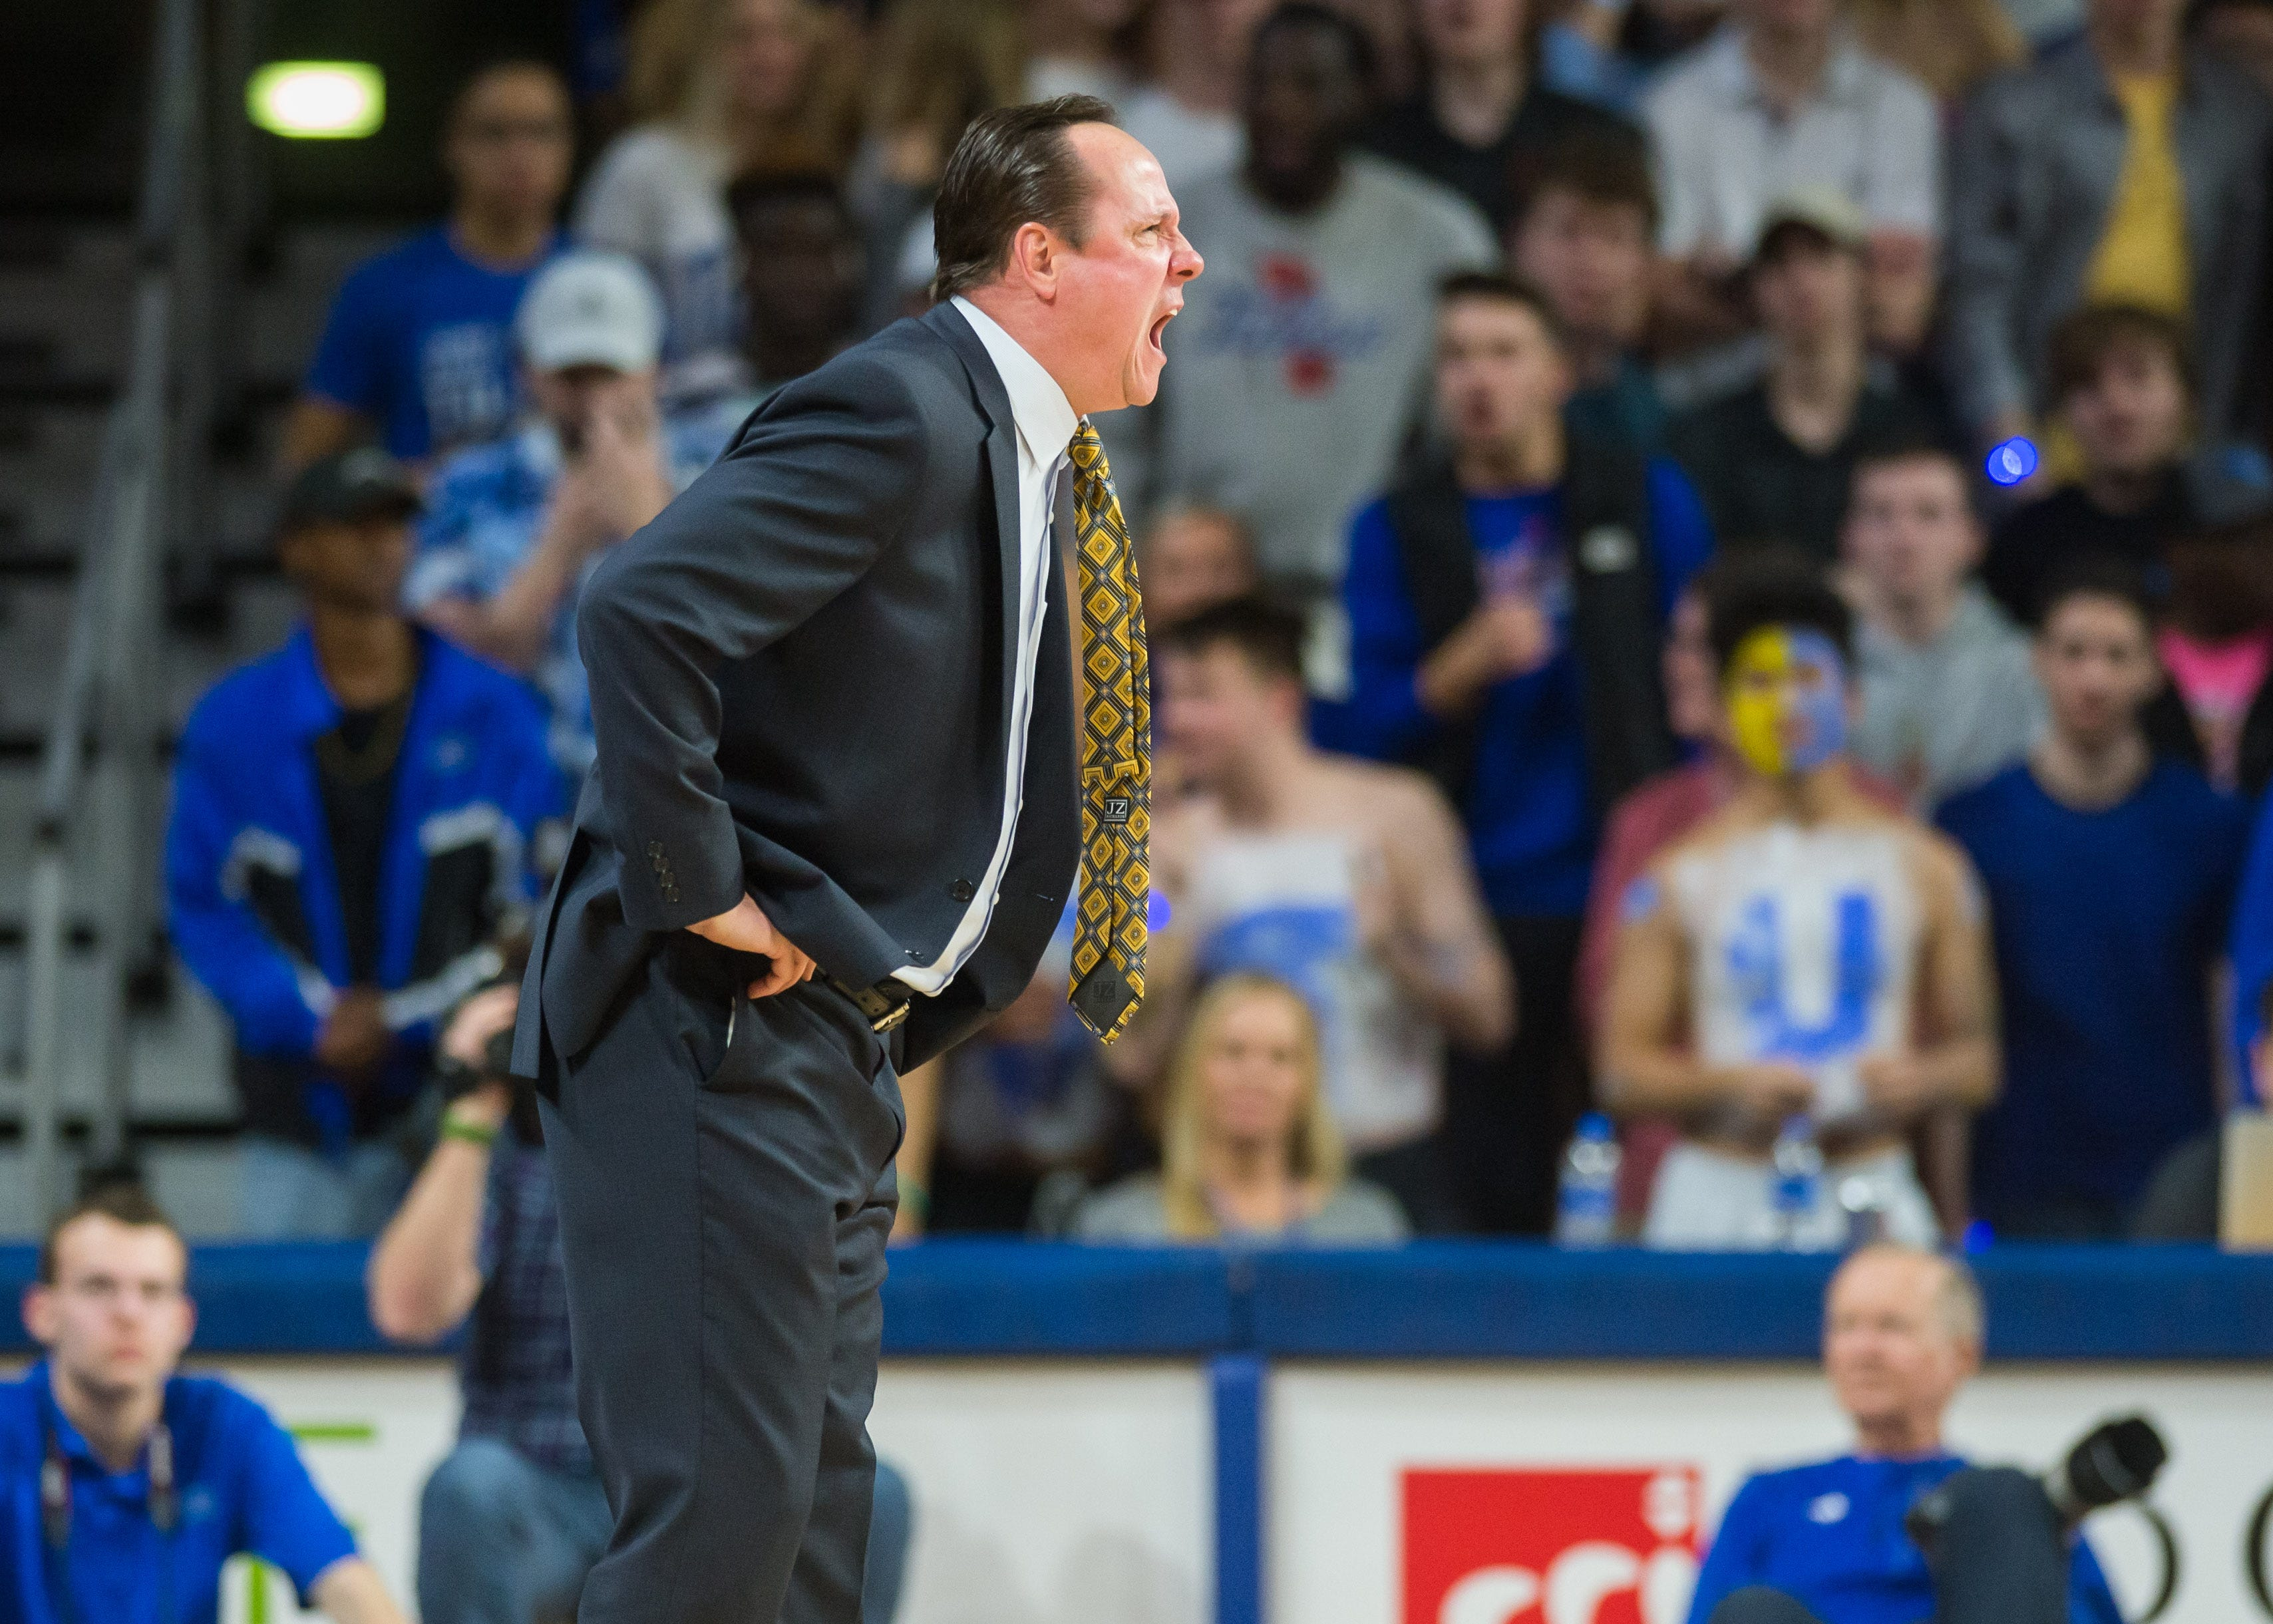 Opinion: Facing more allegations, Gregg Marshall's run as an elite college basketball coach appears to be over